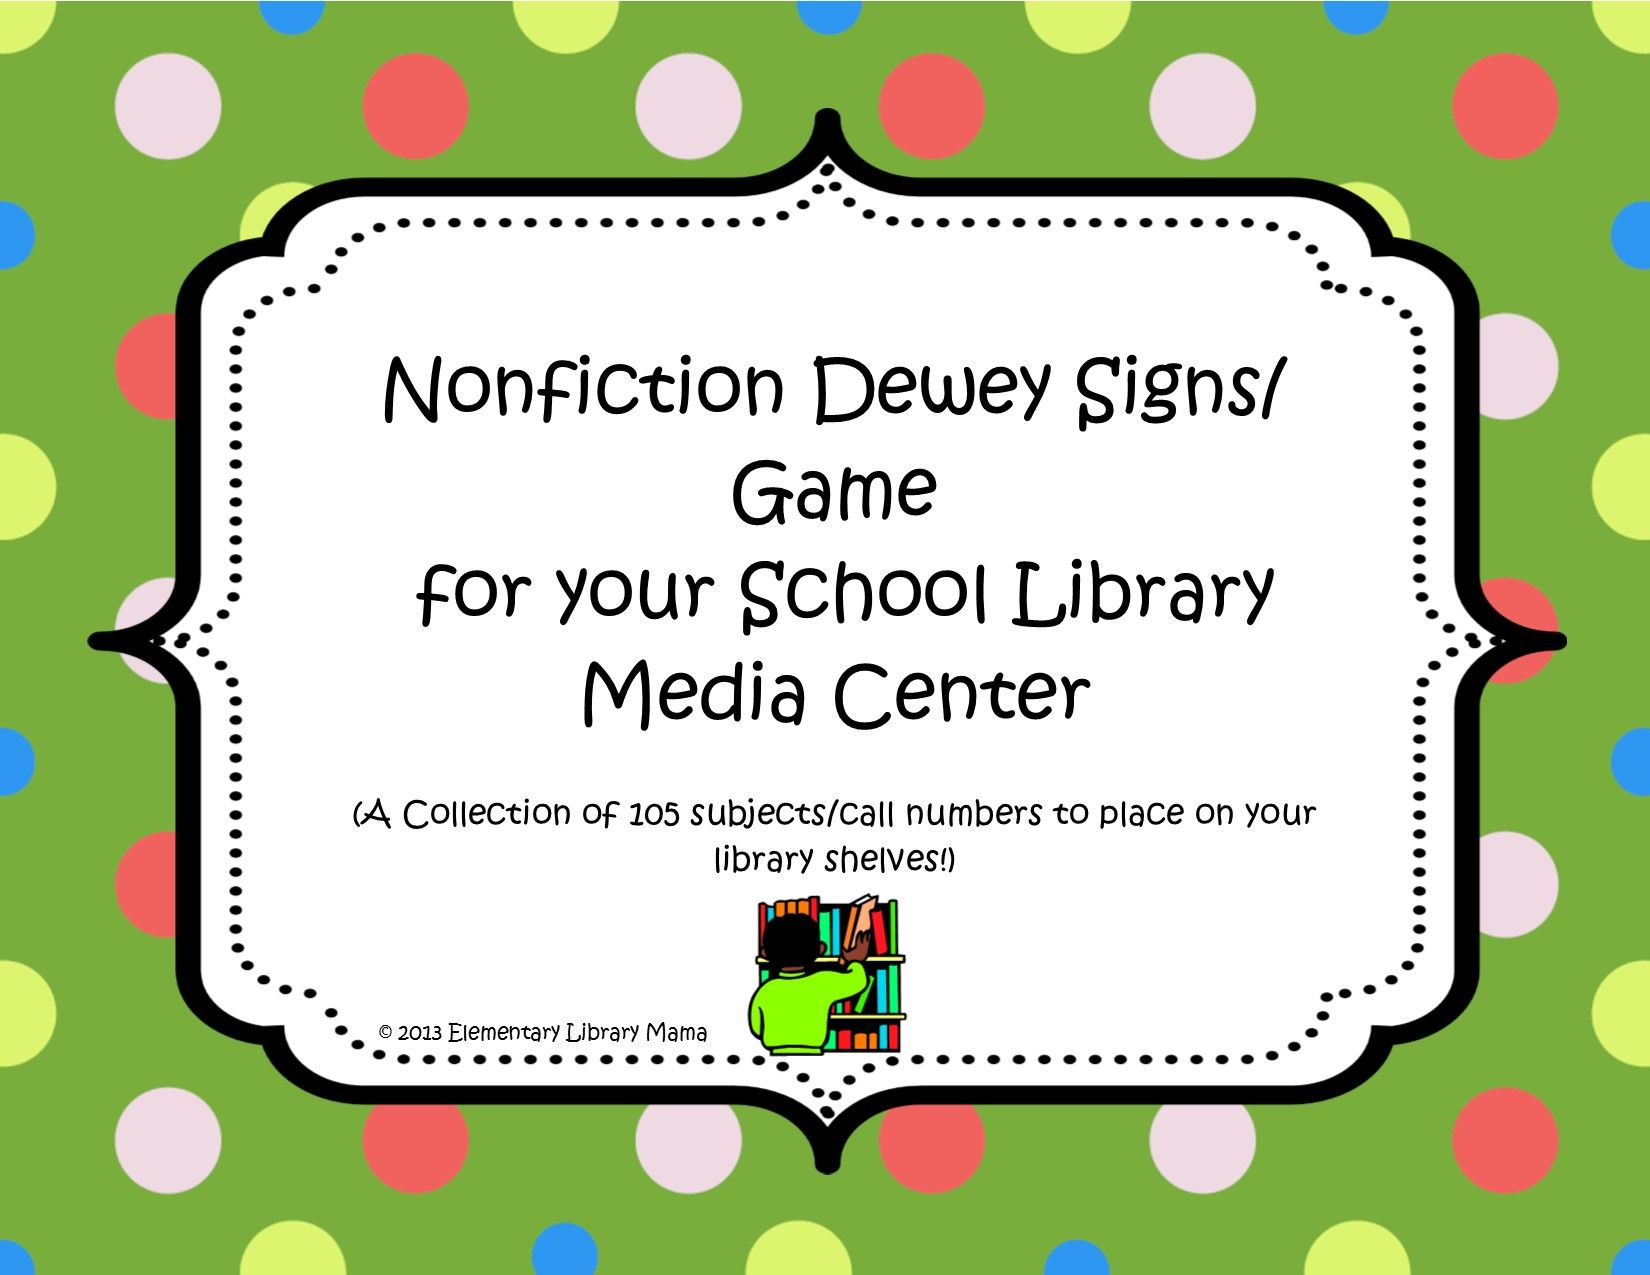 Nonfiction Dewey Signs And Game This Is A Collection Of